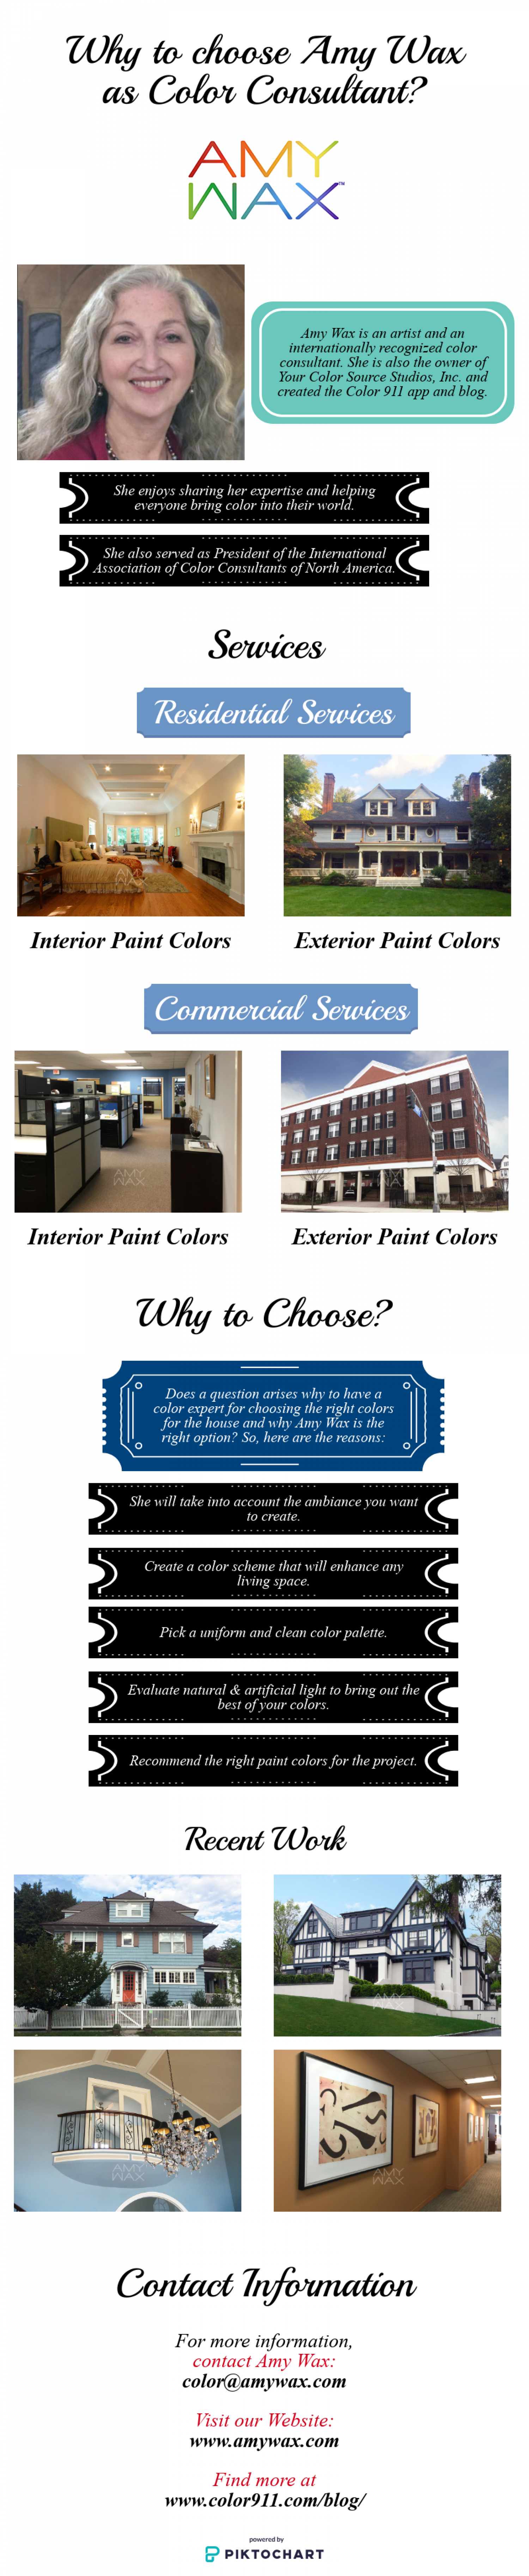 Why to choose Amy Wax as Color Consultant? Infographic